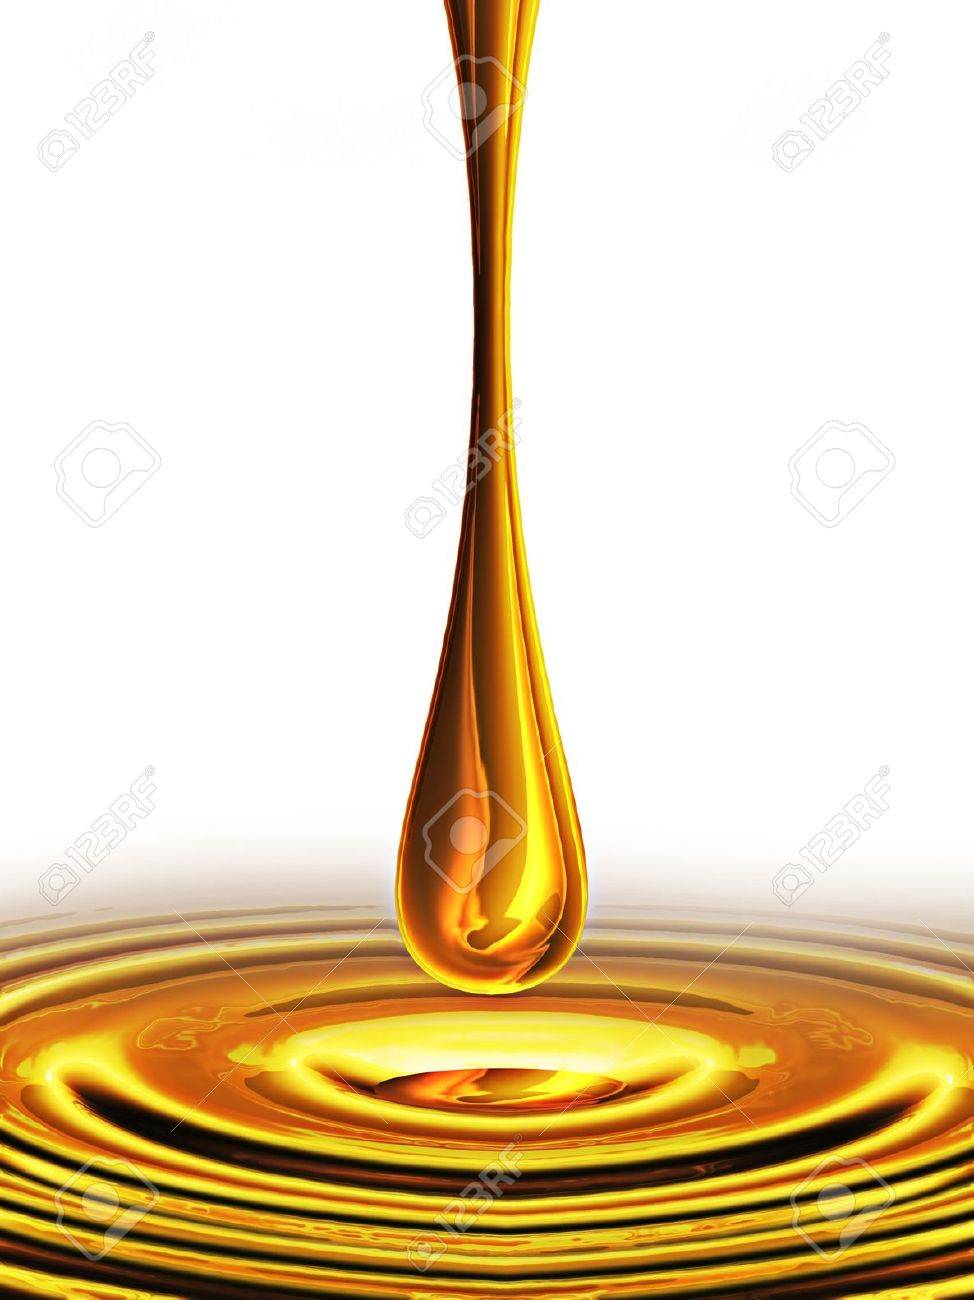 falling drop of oil on a white background Stock Photo - 10615319